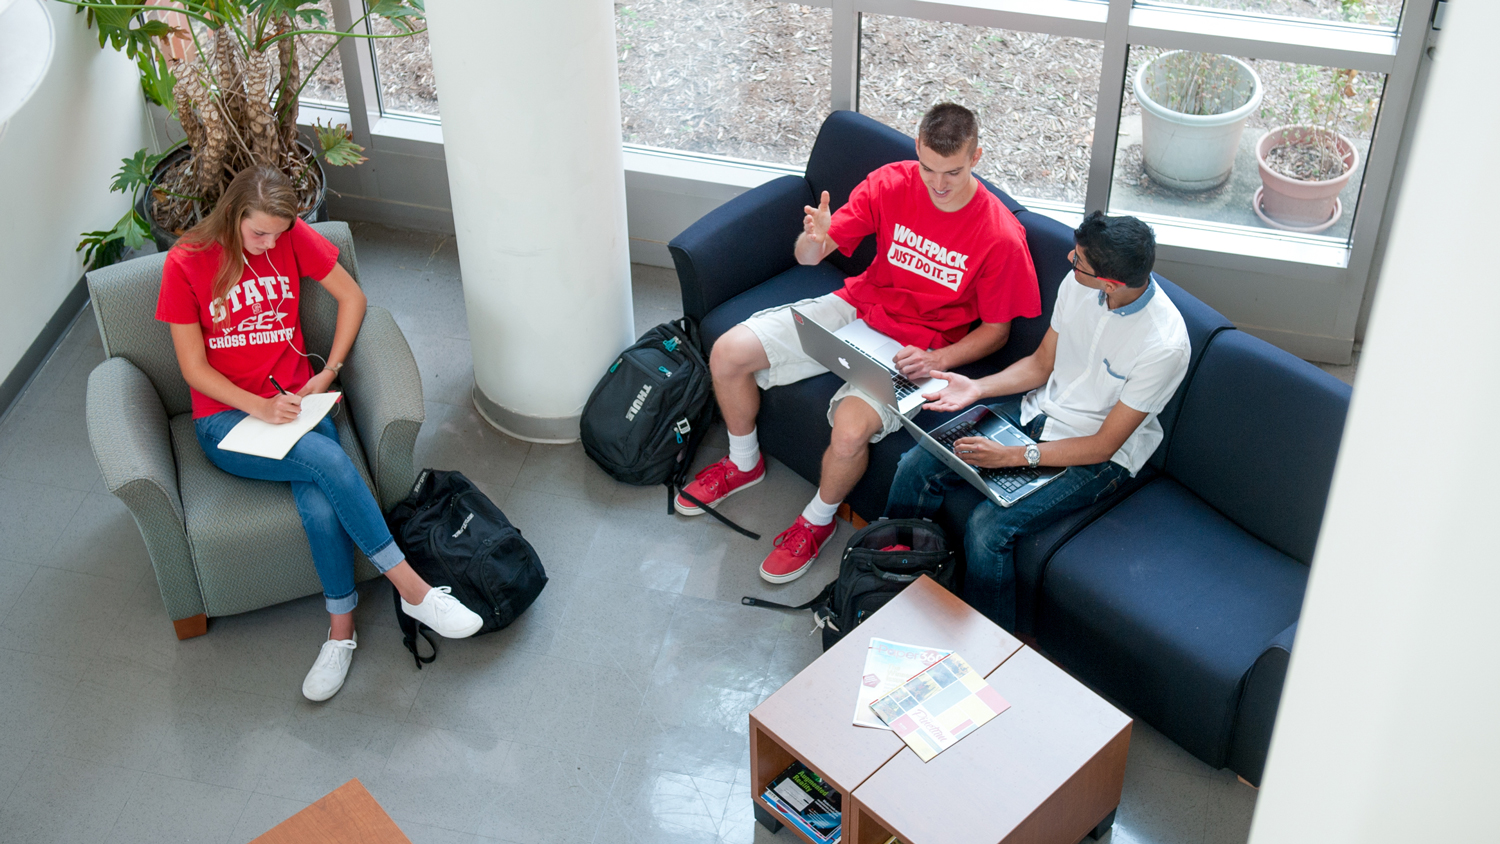 Students in the lounge - Admissions - College of Natural Resources at NC State University